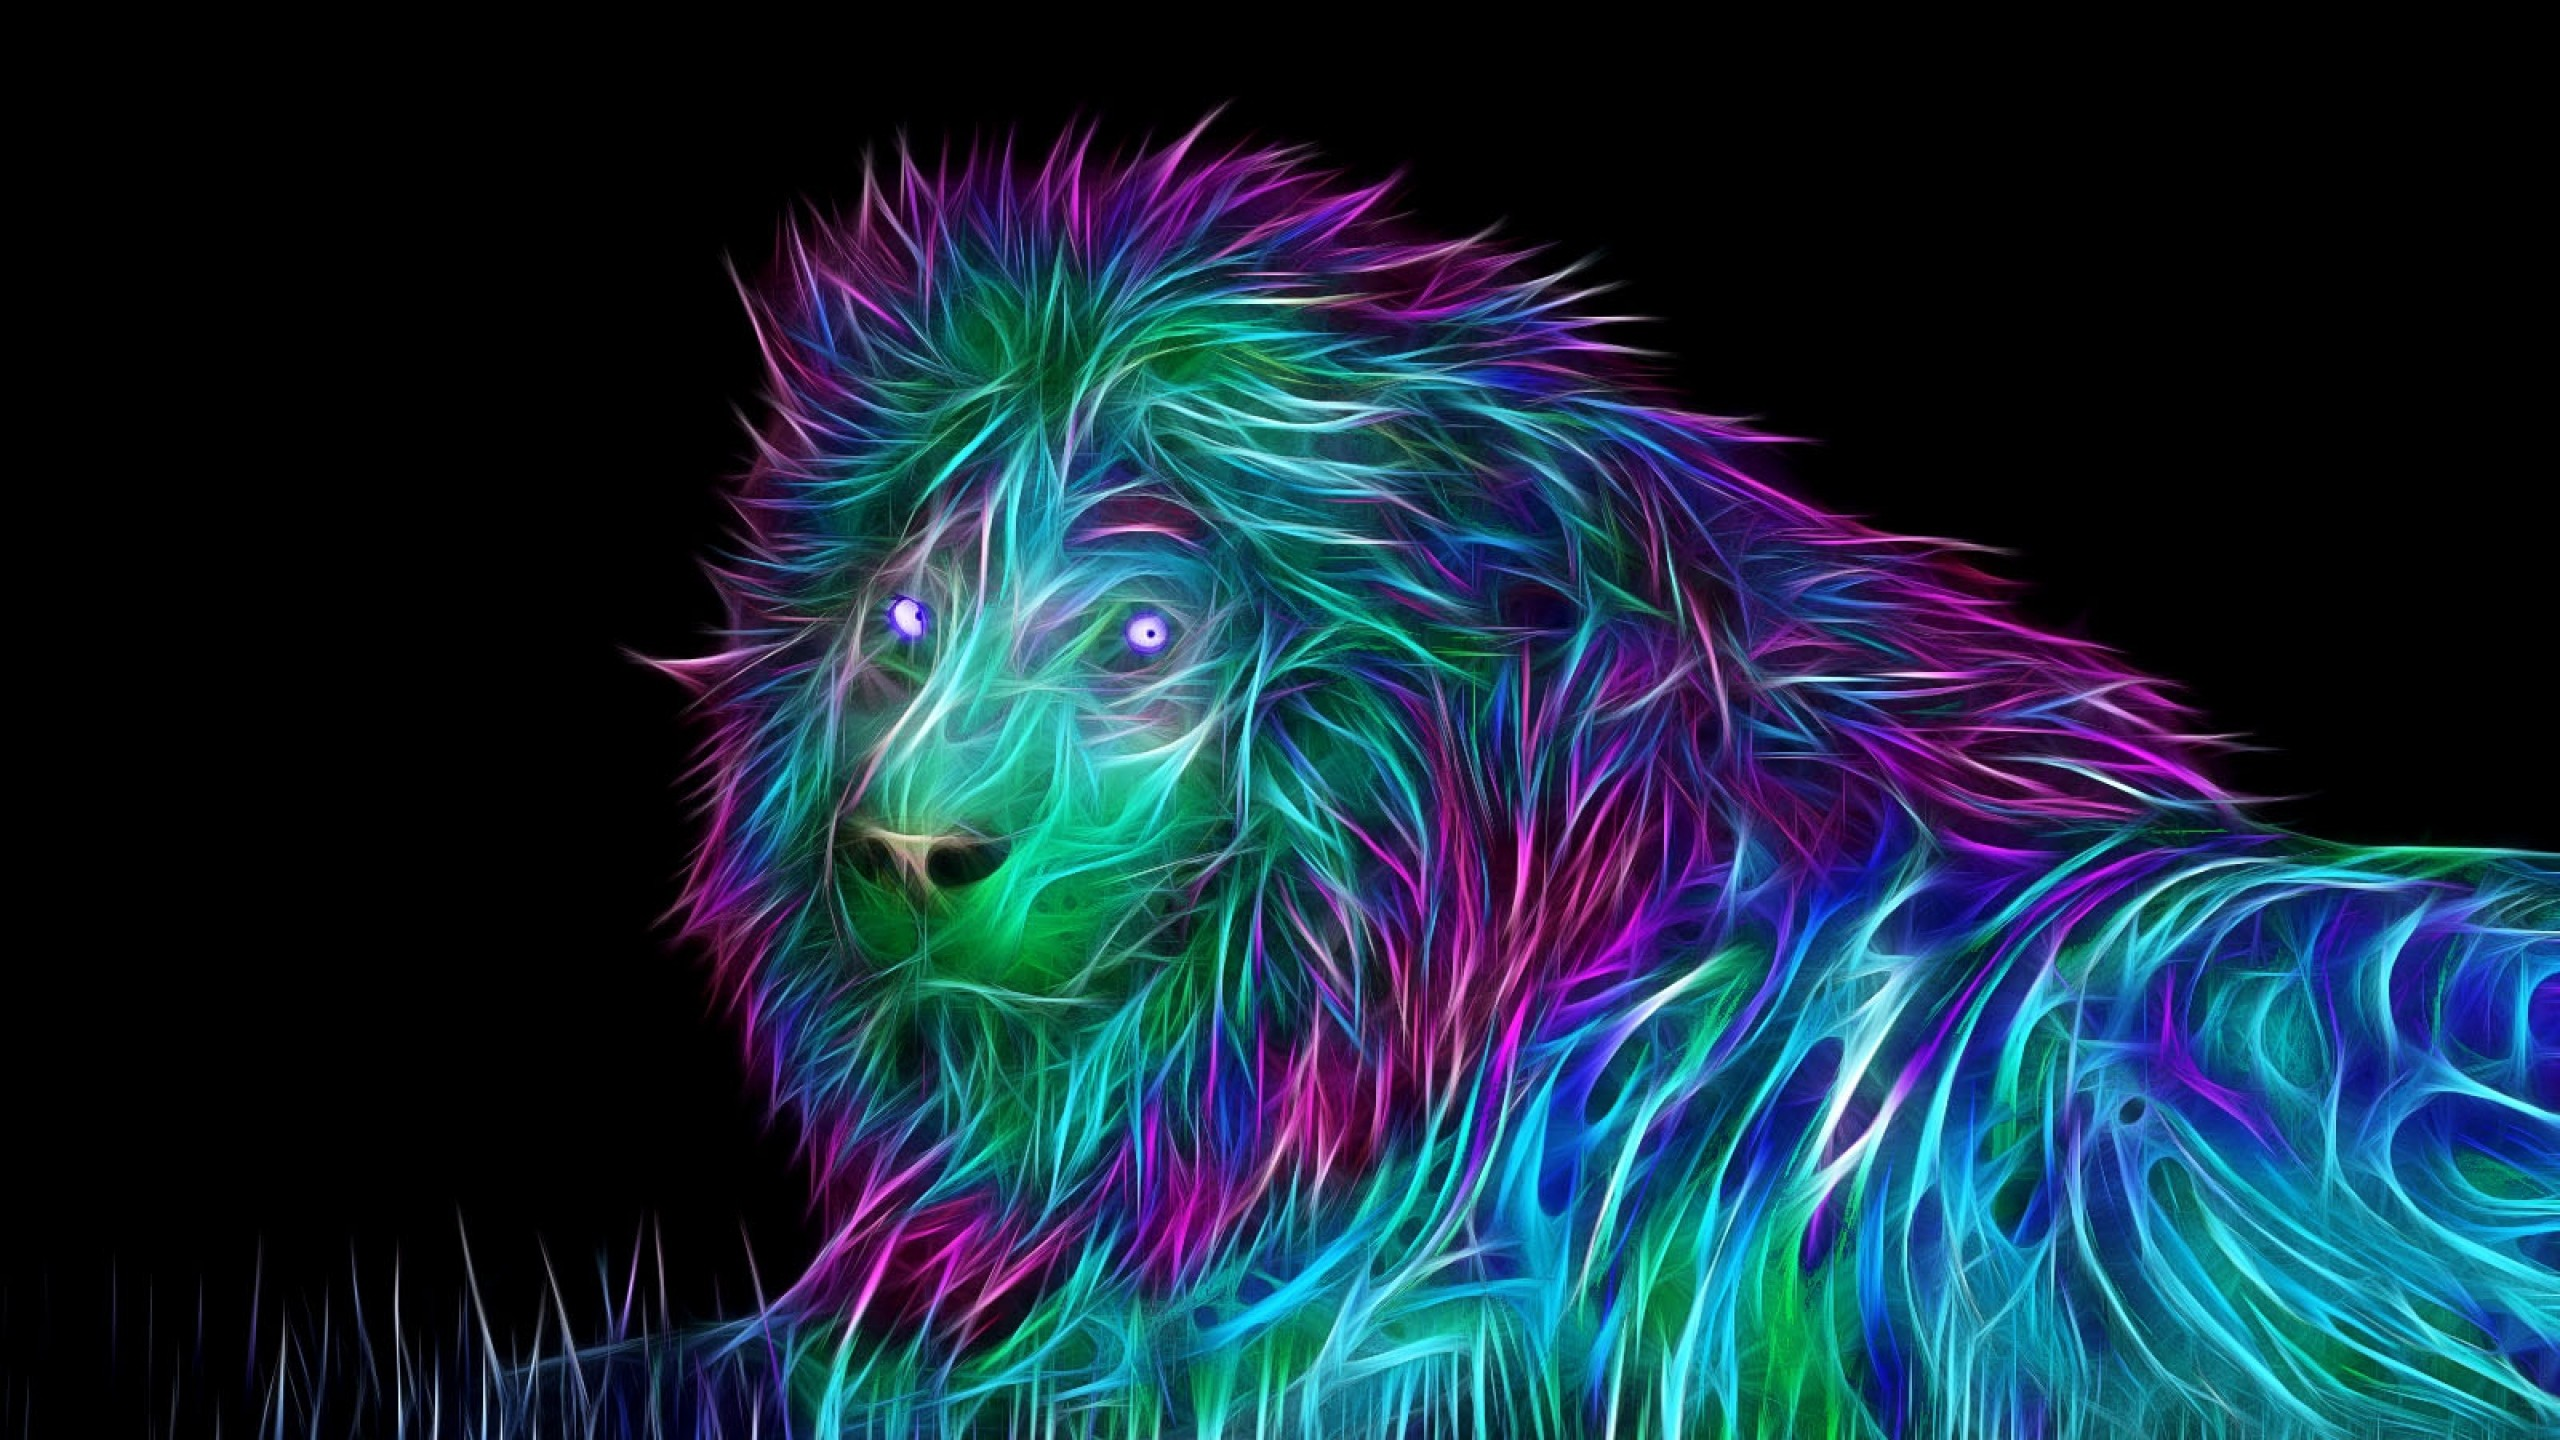 2560x1440 Neon lion wallpaper #neon #lion #digitalart